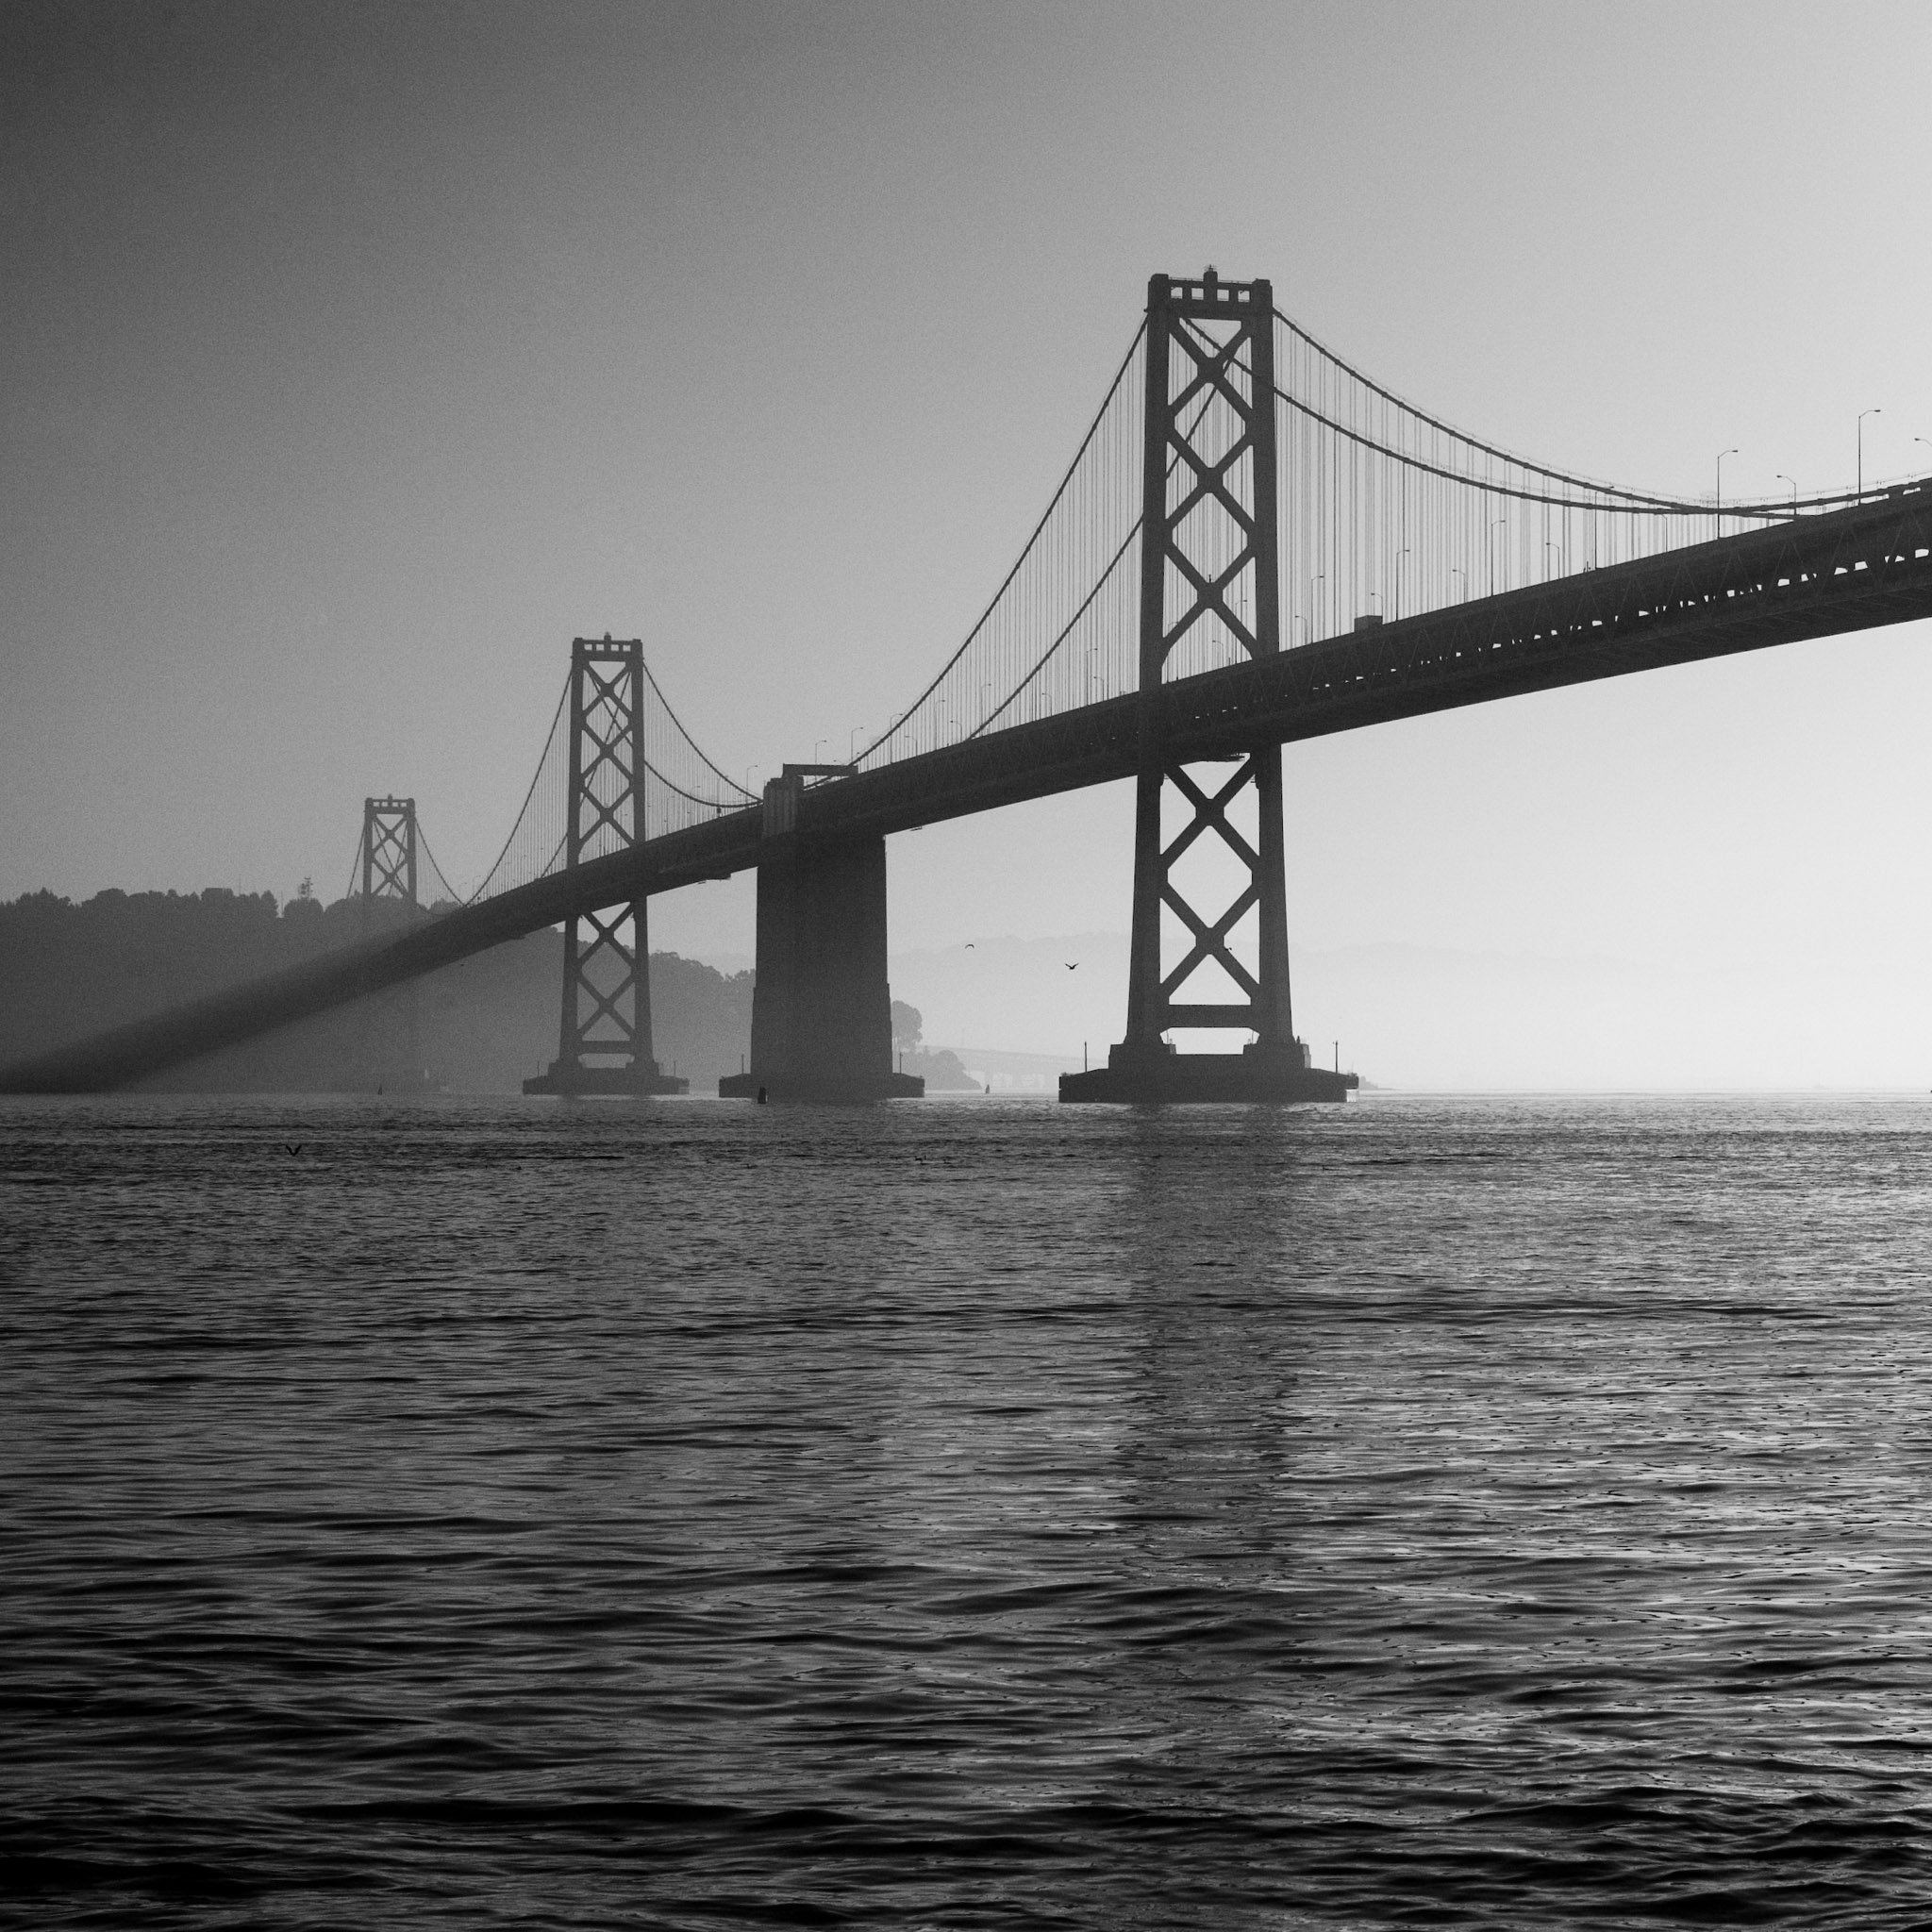 thomas hawk - bay bridge ipad wallpaper